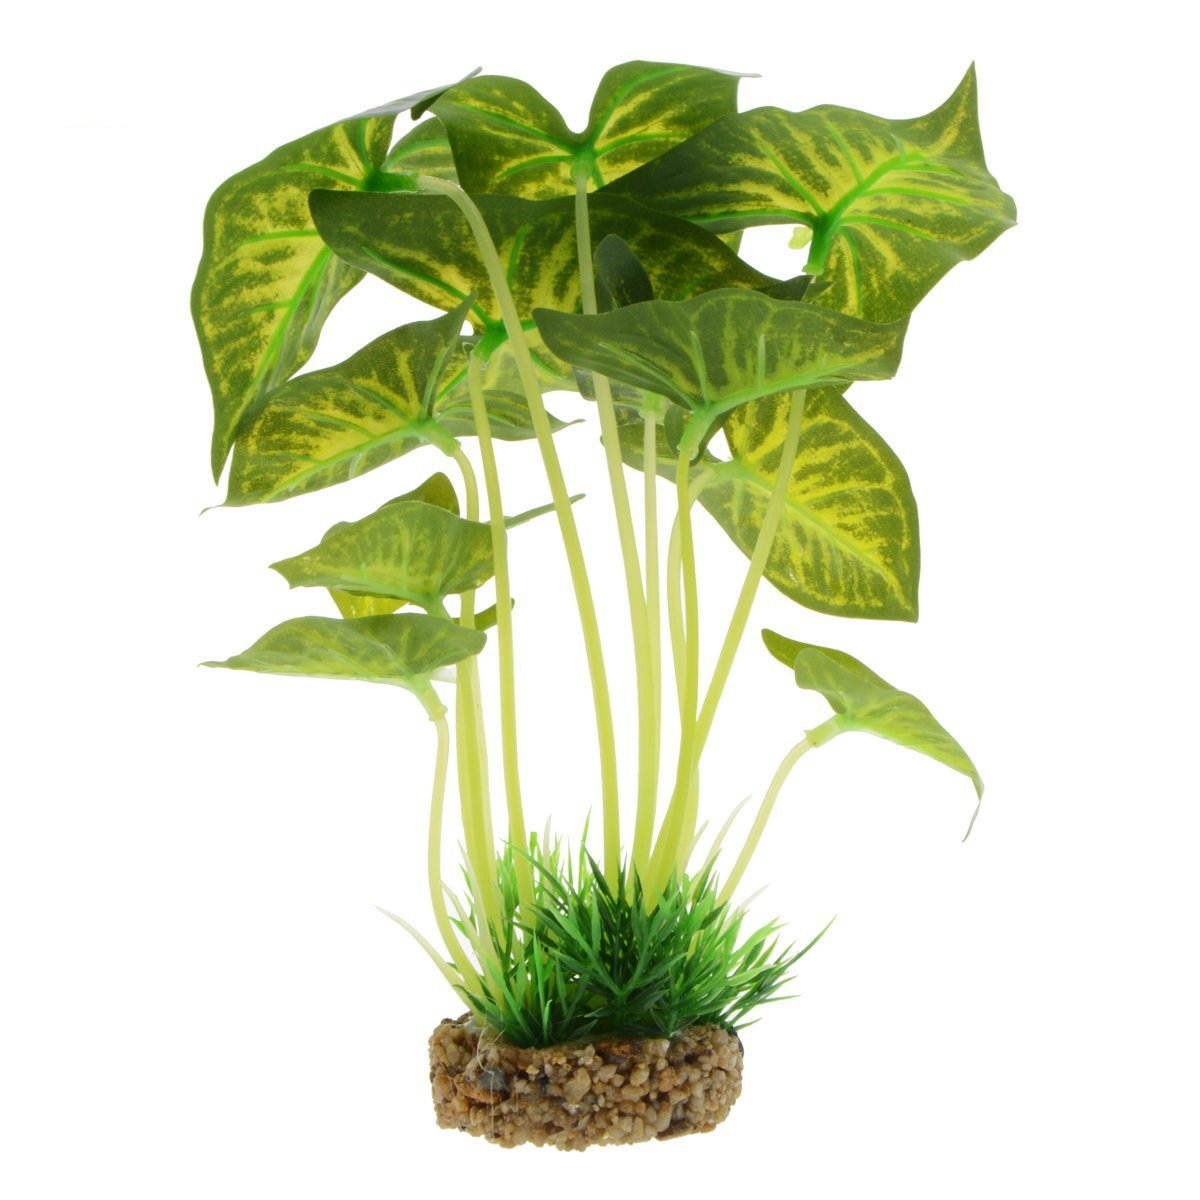 (2) Saim Aquarium Decor Fish Tank Decoration Ornament Artificial Plastic Syngonium Plant 22cm Tall